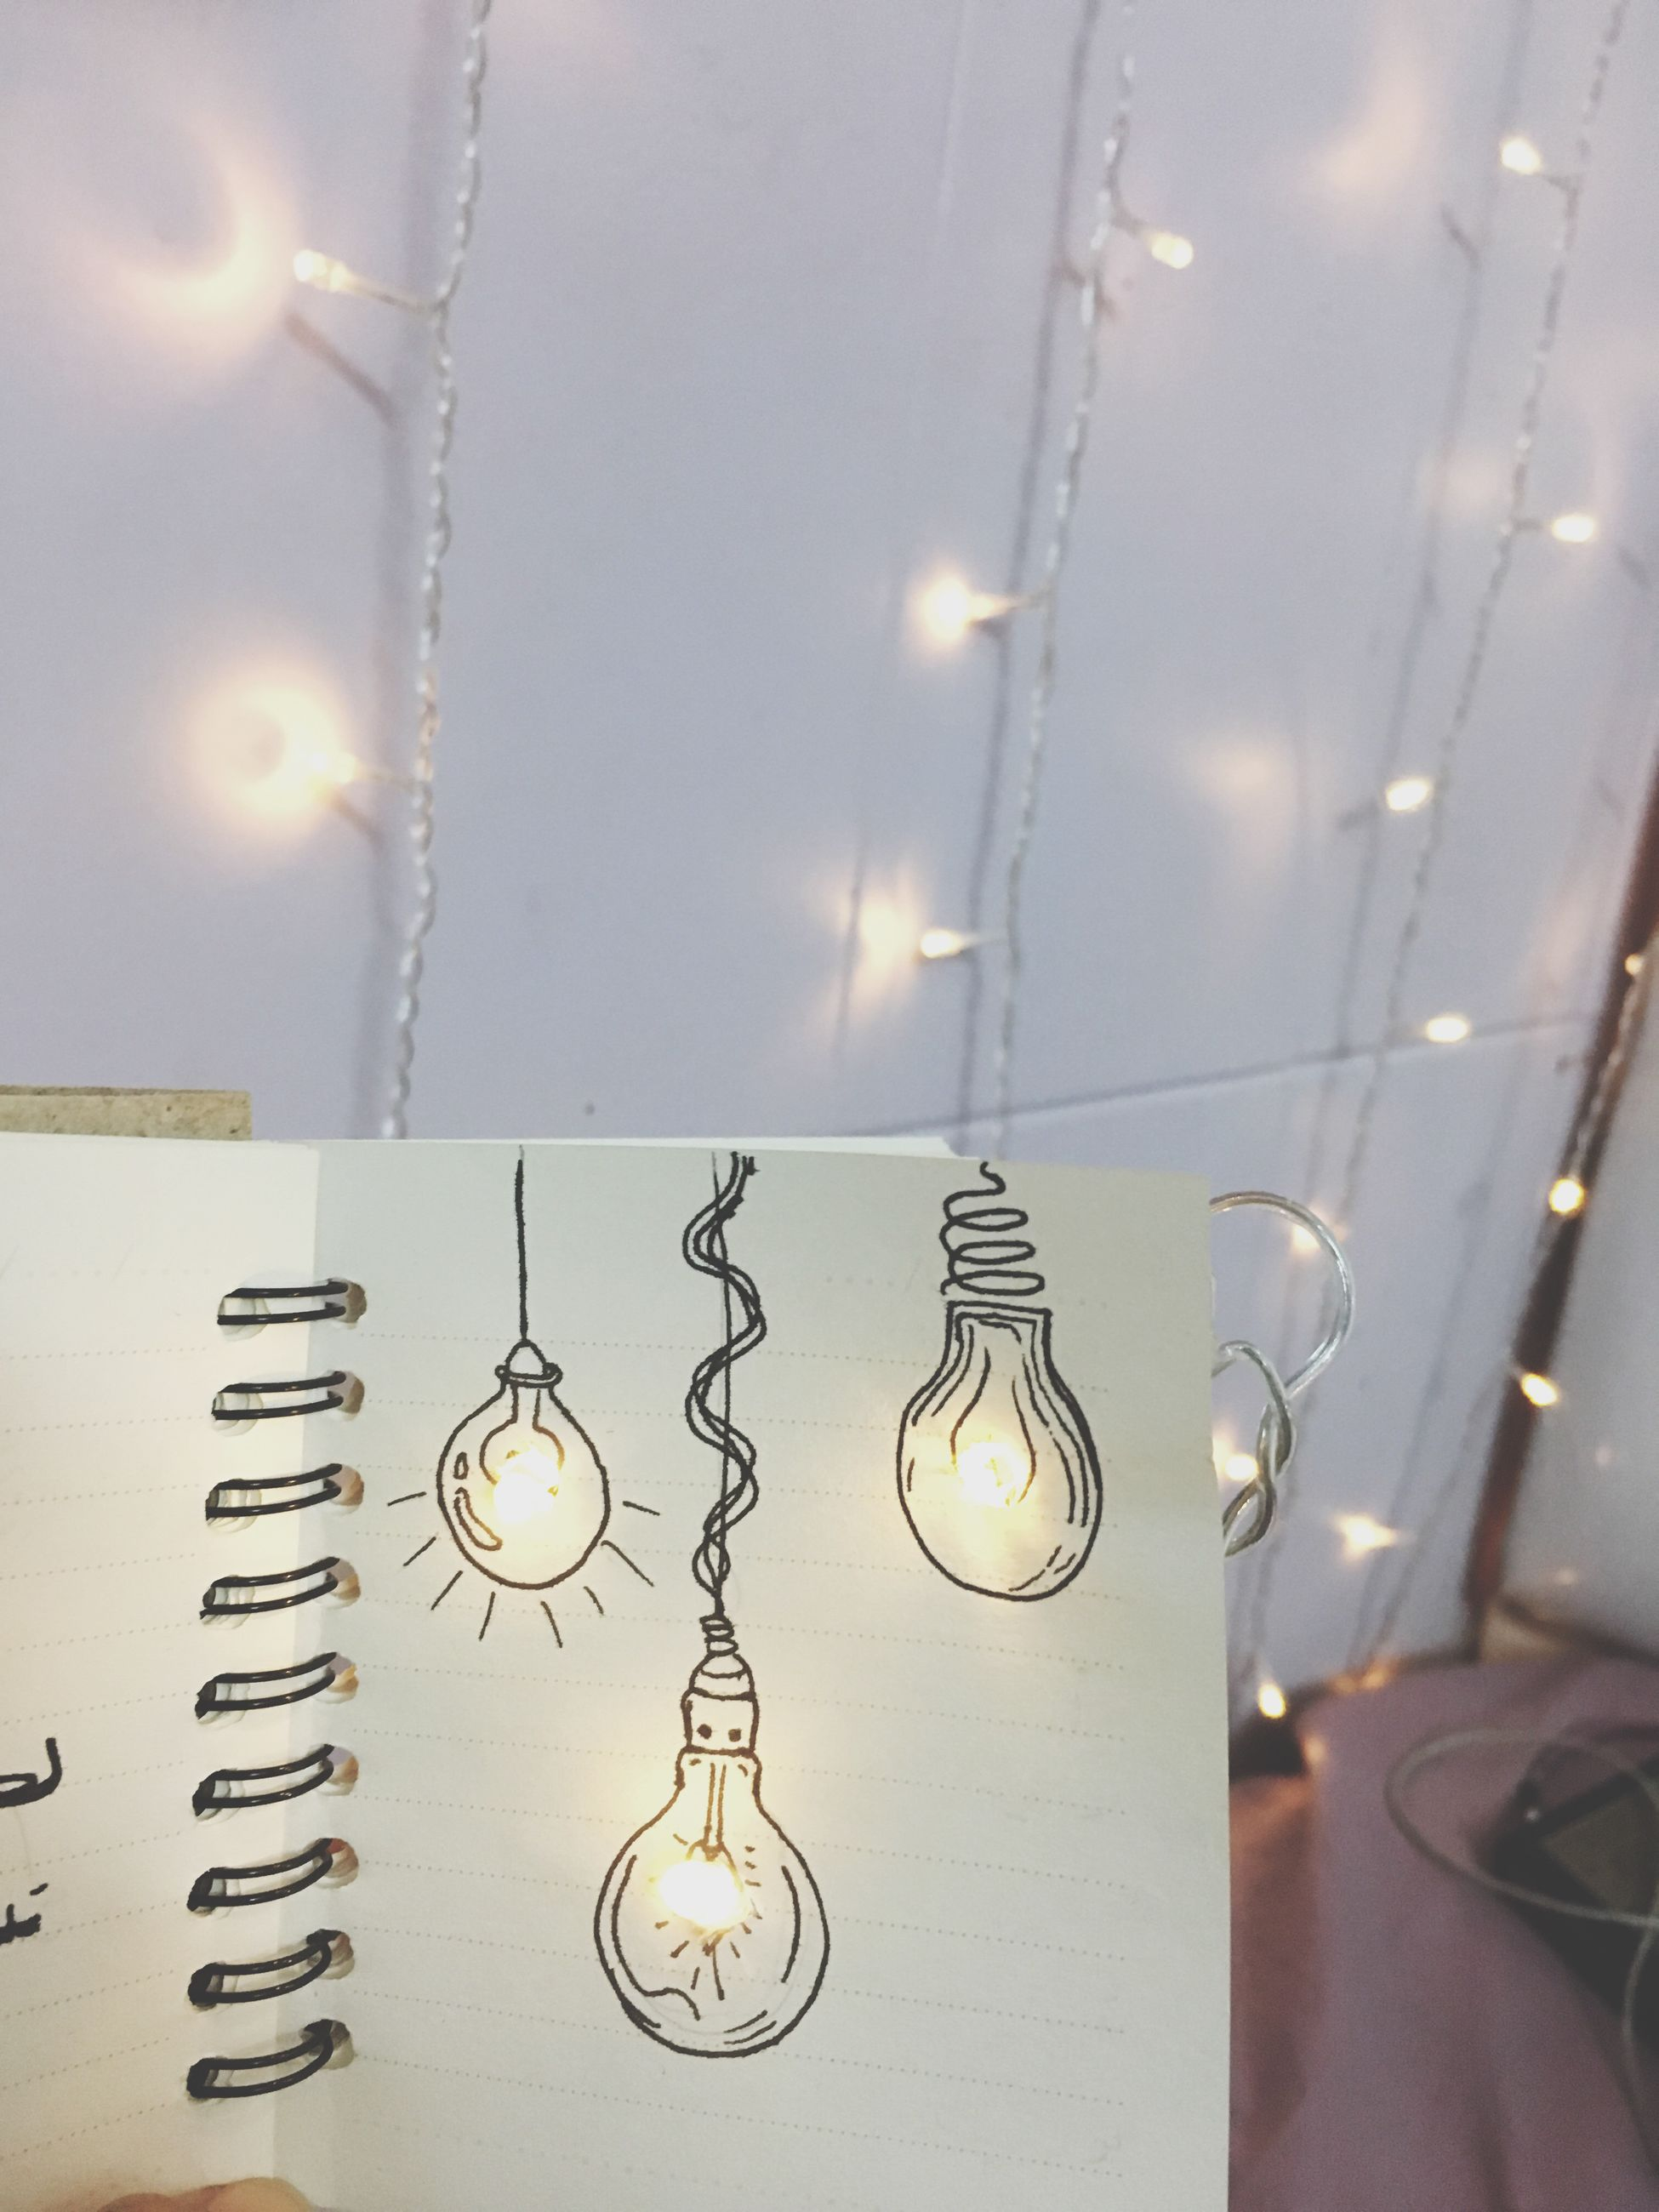 hanging, metal, no people, illuminated, chain, close-up, indoors, light bulb, day